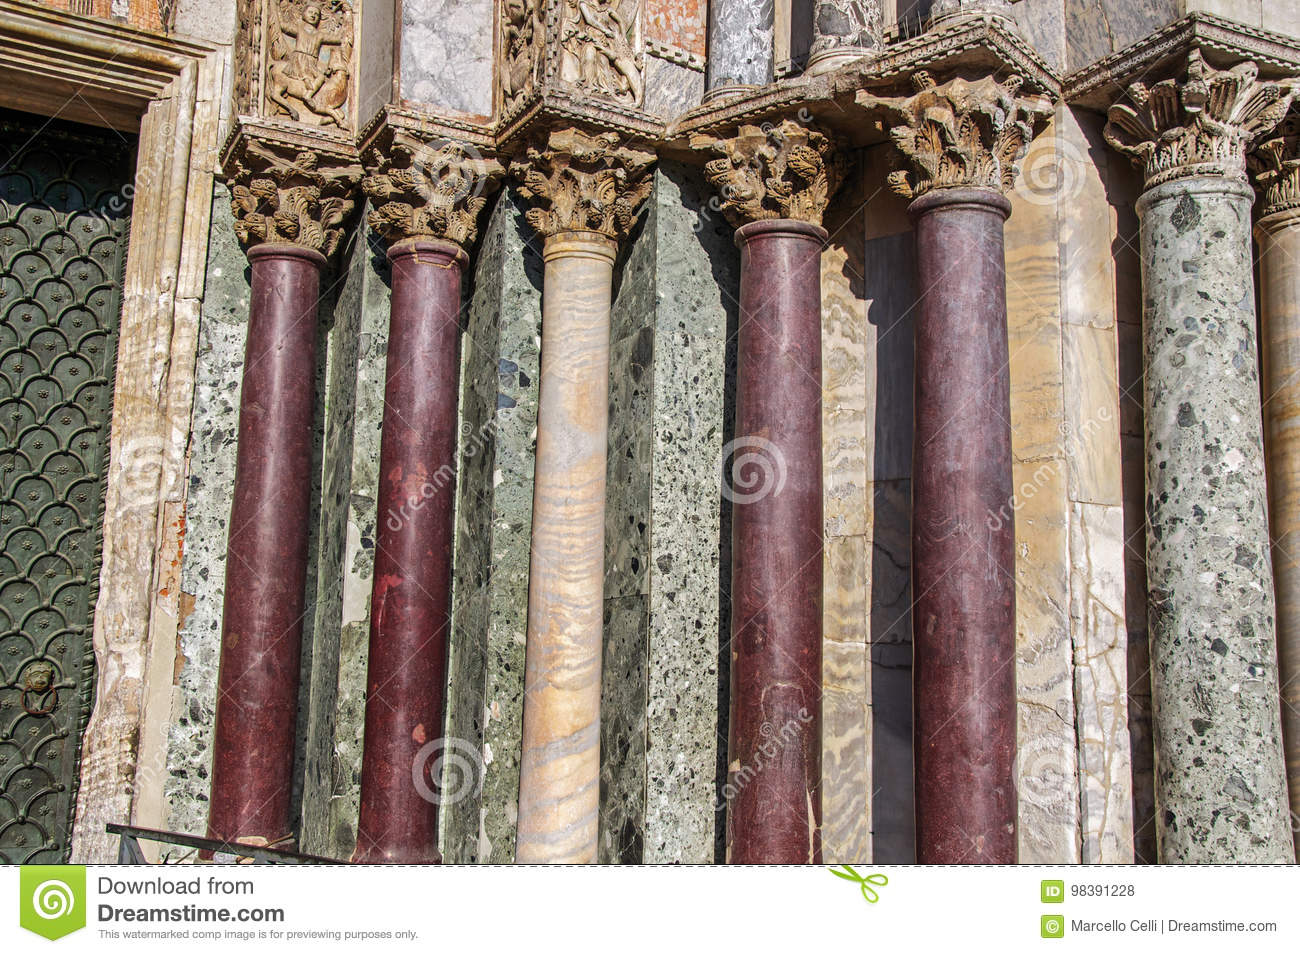 Close-up of columns and capitals made of various types of marble on the San Marco Basilica facade at Venice.